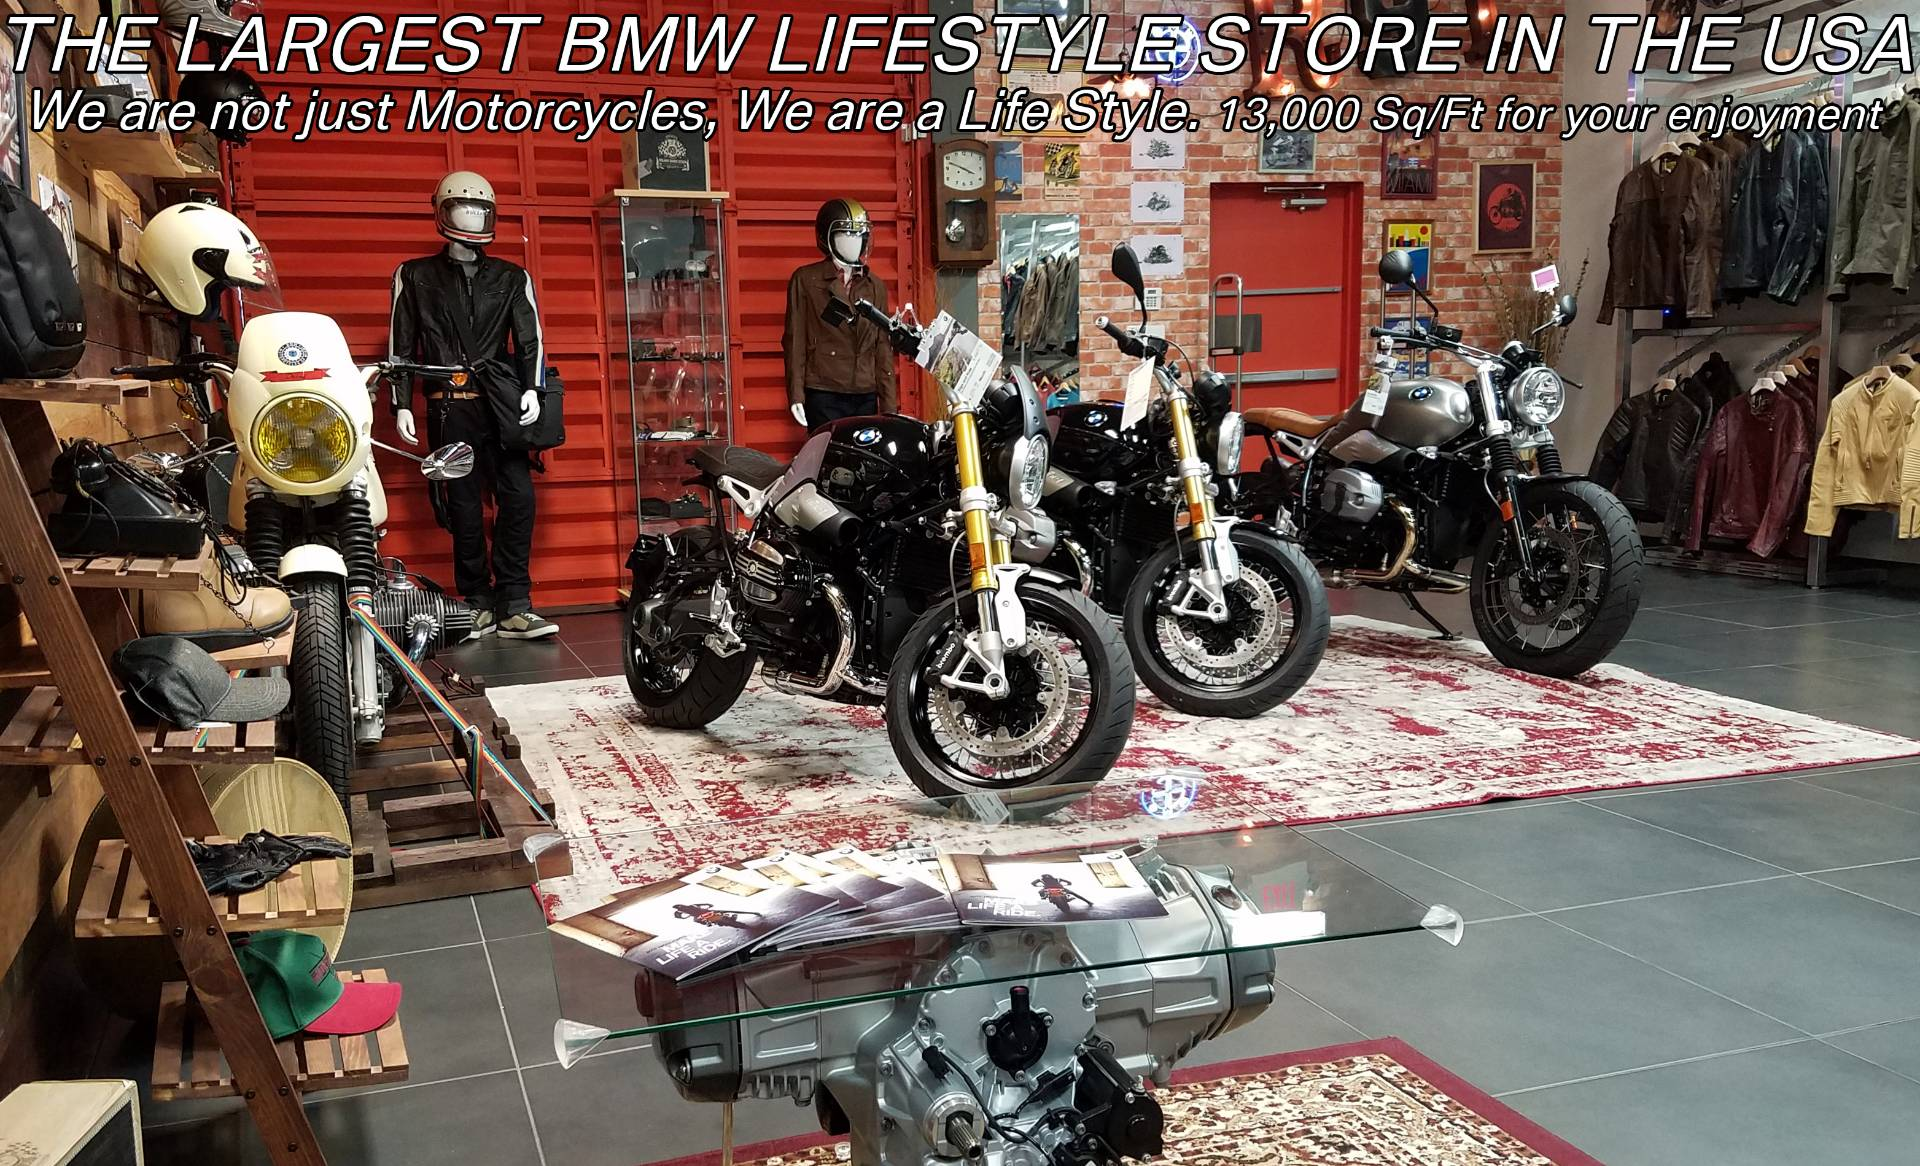 New 2019 BMW R NineT Scrambler for sale, BMW for sale, BMW Motorcycle Café Racer, new BMW Scrambler, Srambler, BMW. BMW Motorcycles of Miami, Motorcycles of Miami - Photo 31